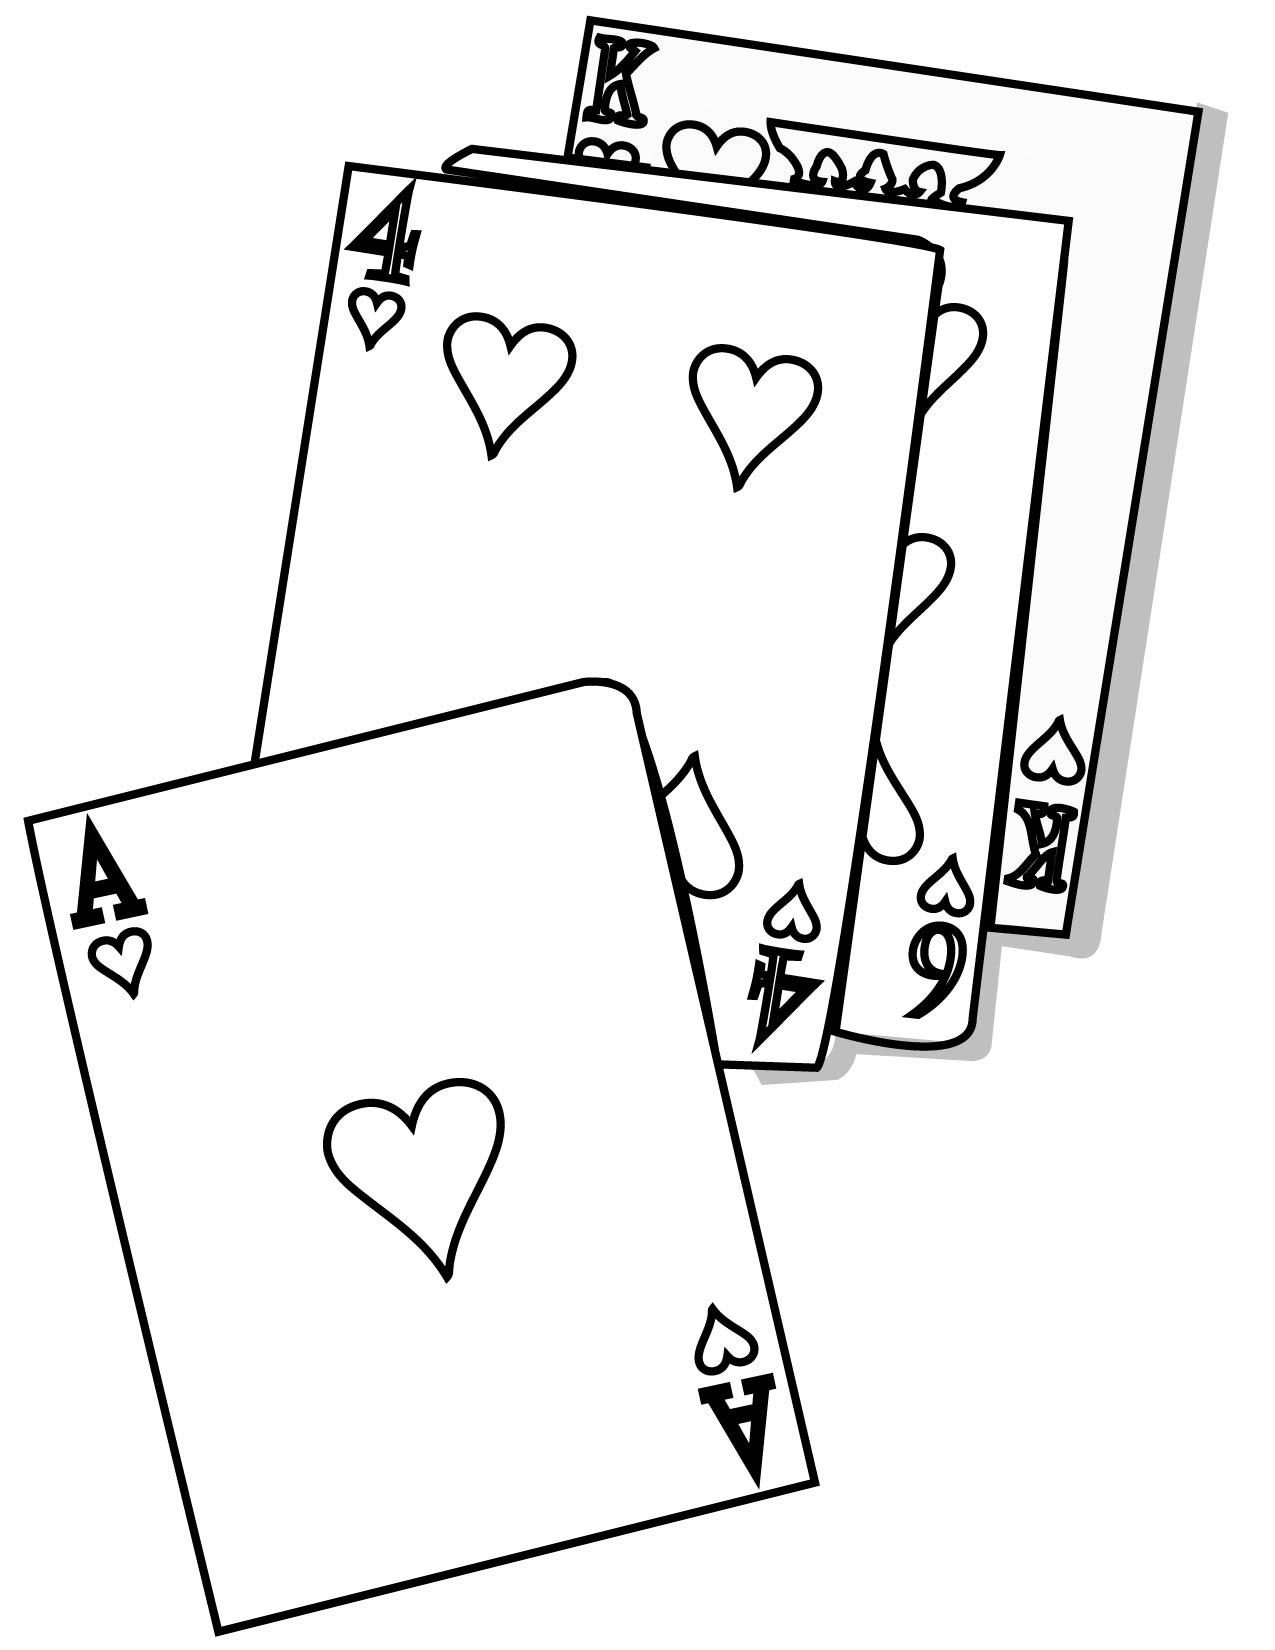 Coloring pages games card coloring pages Coloring book games